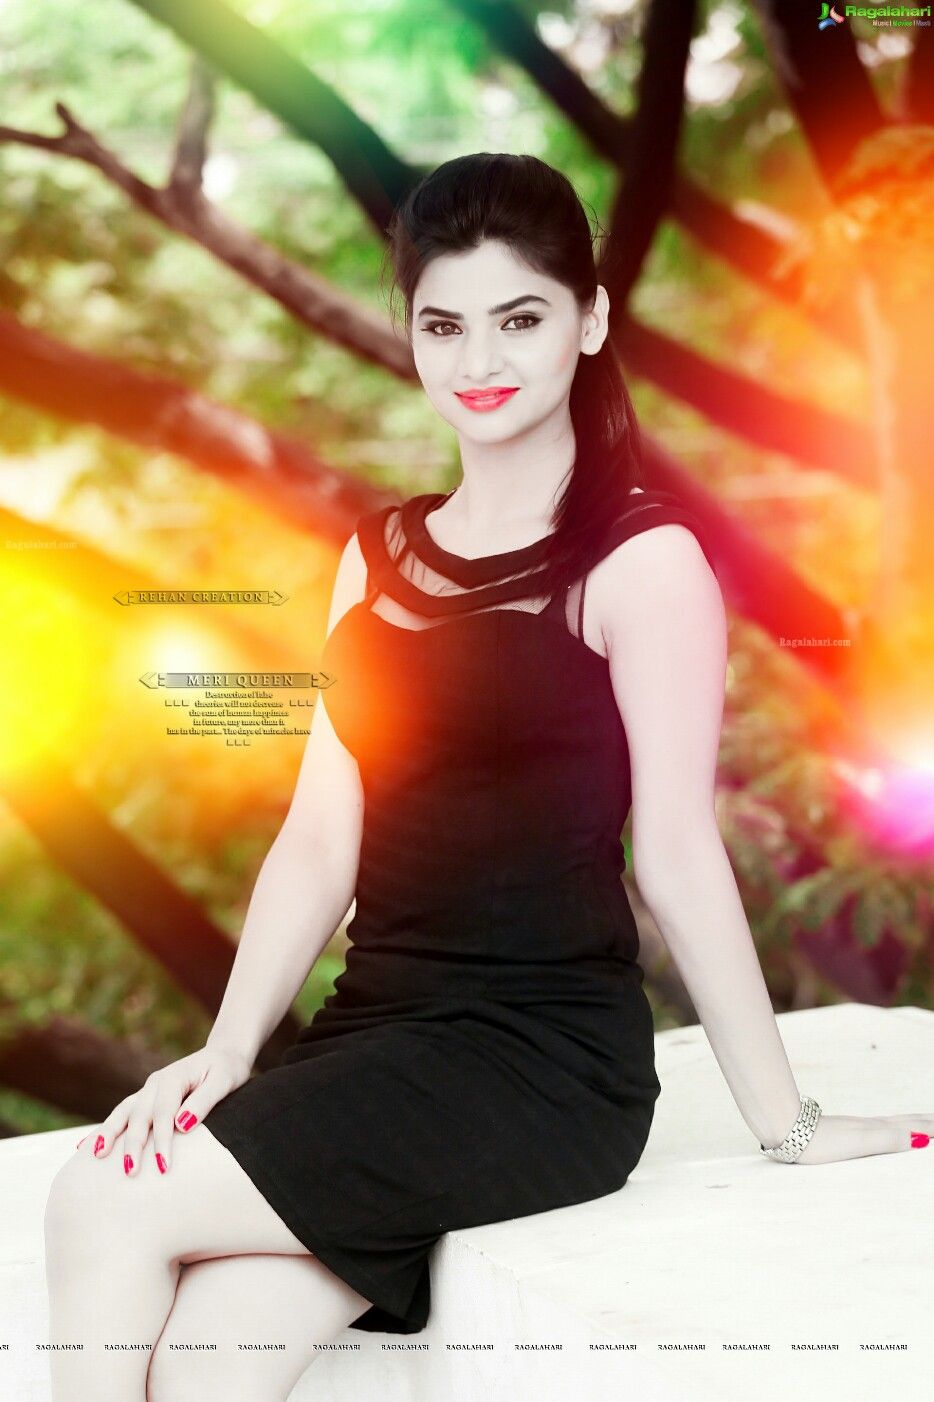 Pin by 𝓙𝓪𝓪𝓼𝓶𝓲_𝓷𝓪𝔃𝓮𝓮 on Avneet kaur   Stylish girl images